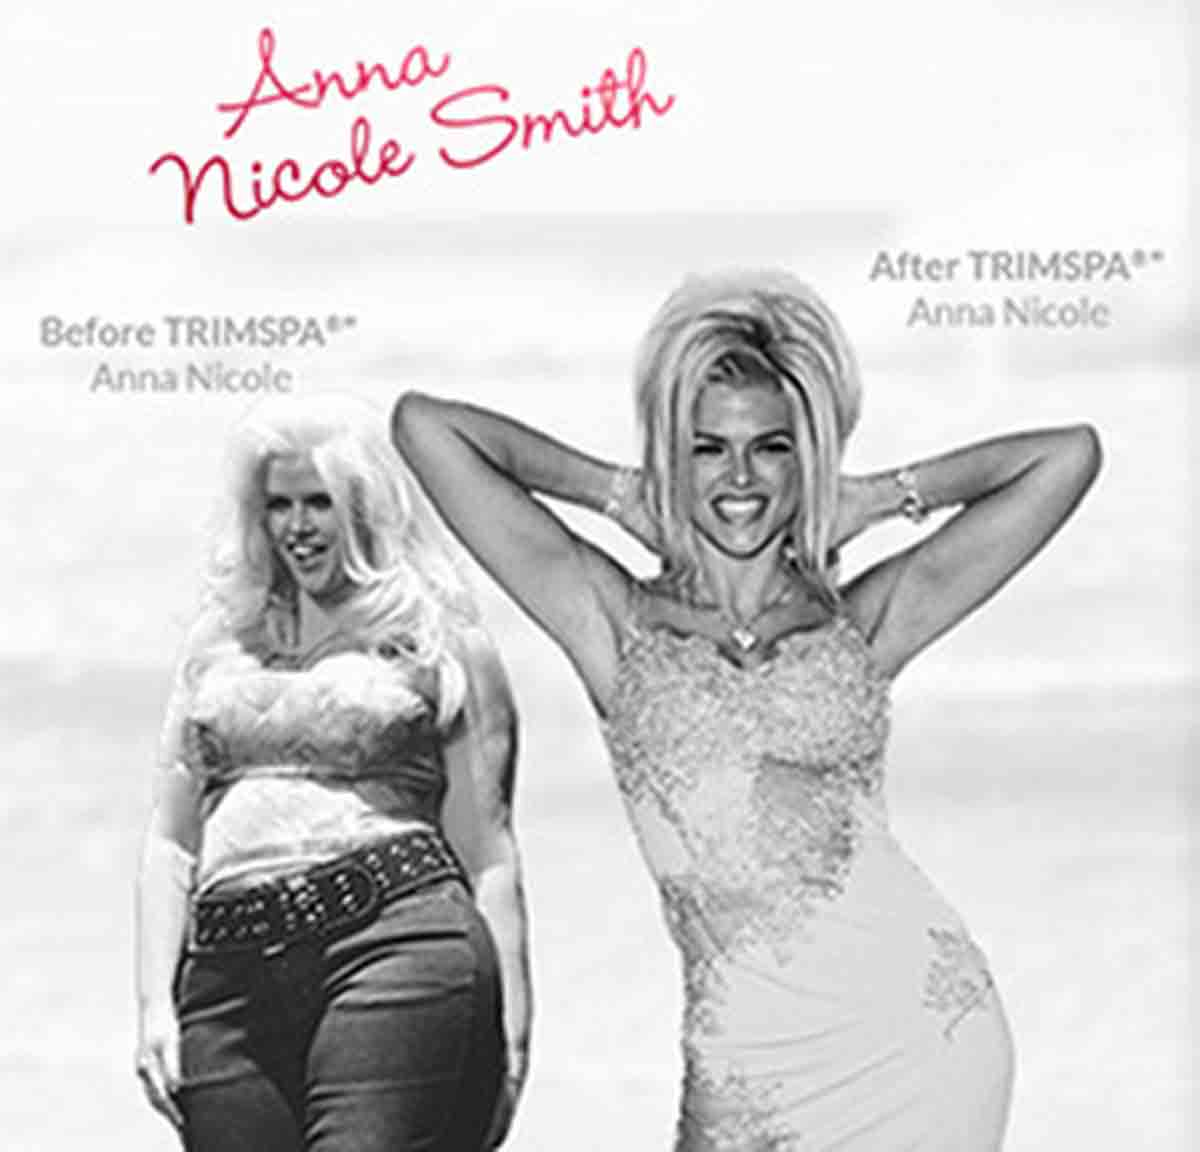 Trimspa X32 Anna Nicole Smith